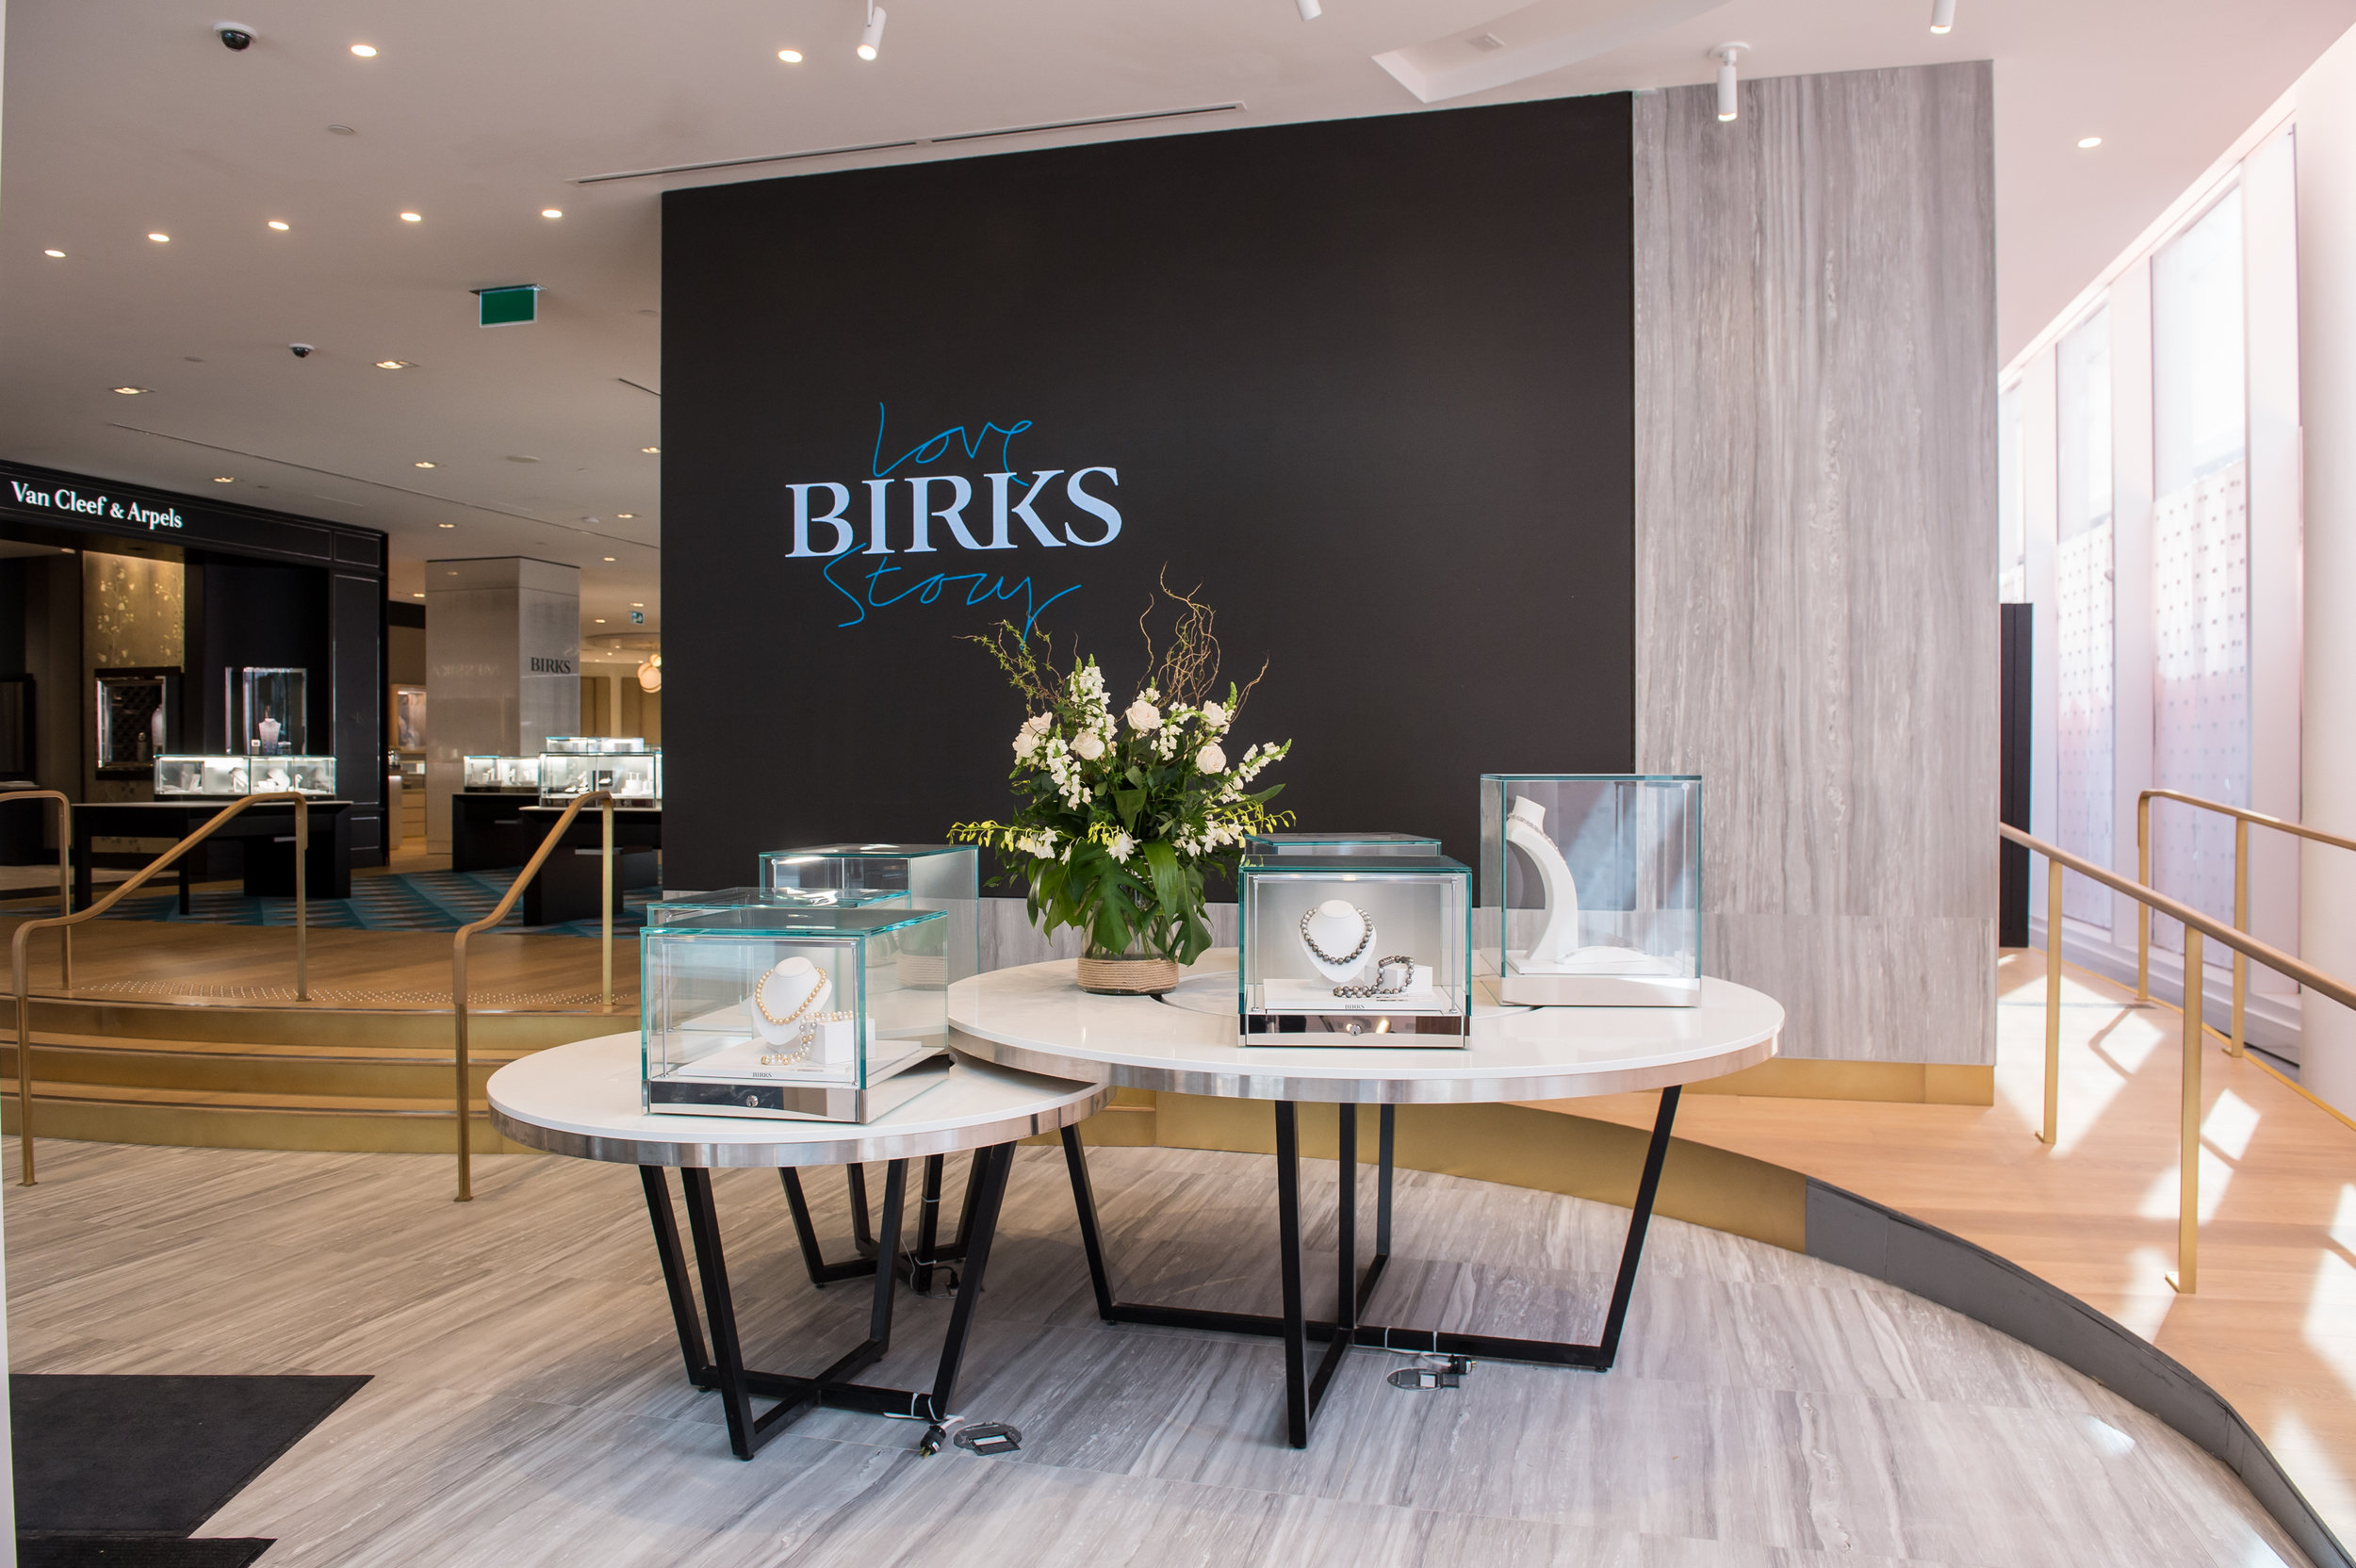 The 'Labo' Pop-up area with video screen at the front of the new store. Photo: Maison Birks